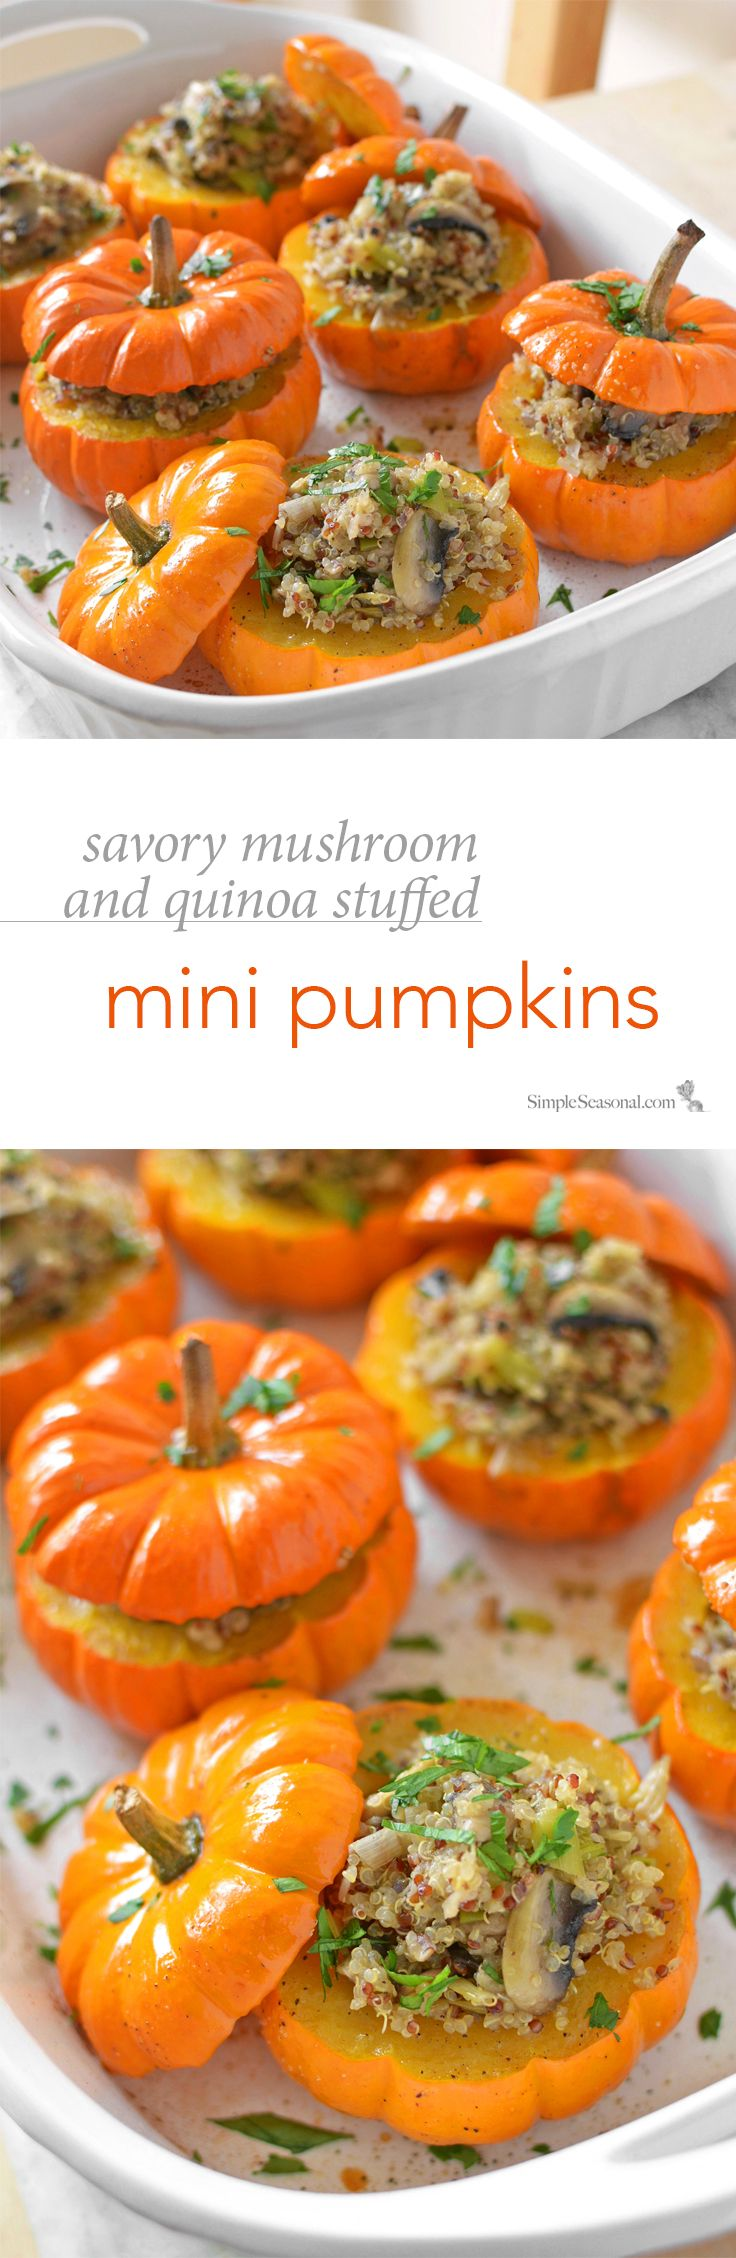 Savory Mushroom and Quinoa Stuffed Mini Pumpkins – Easy to make and deliciously sweet and savory, these ADORABLE little stuffed pumpkins will be the hit of your next fall gathering! | SimpleSeasonal.com